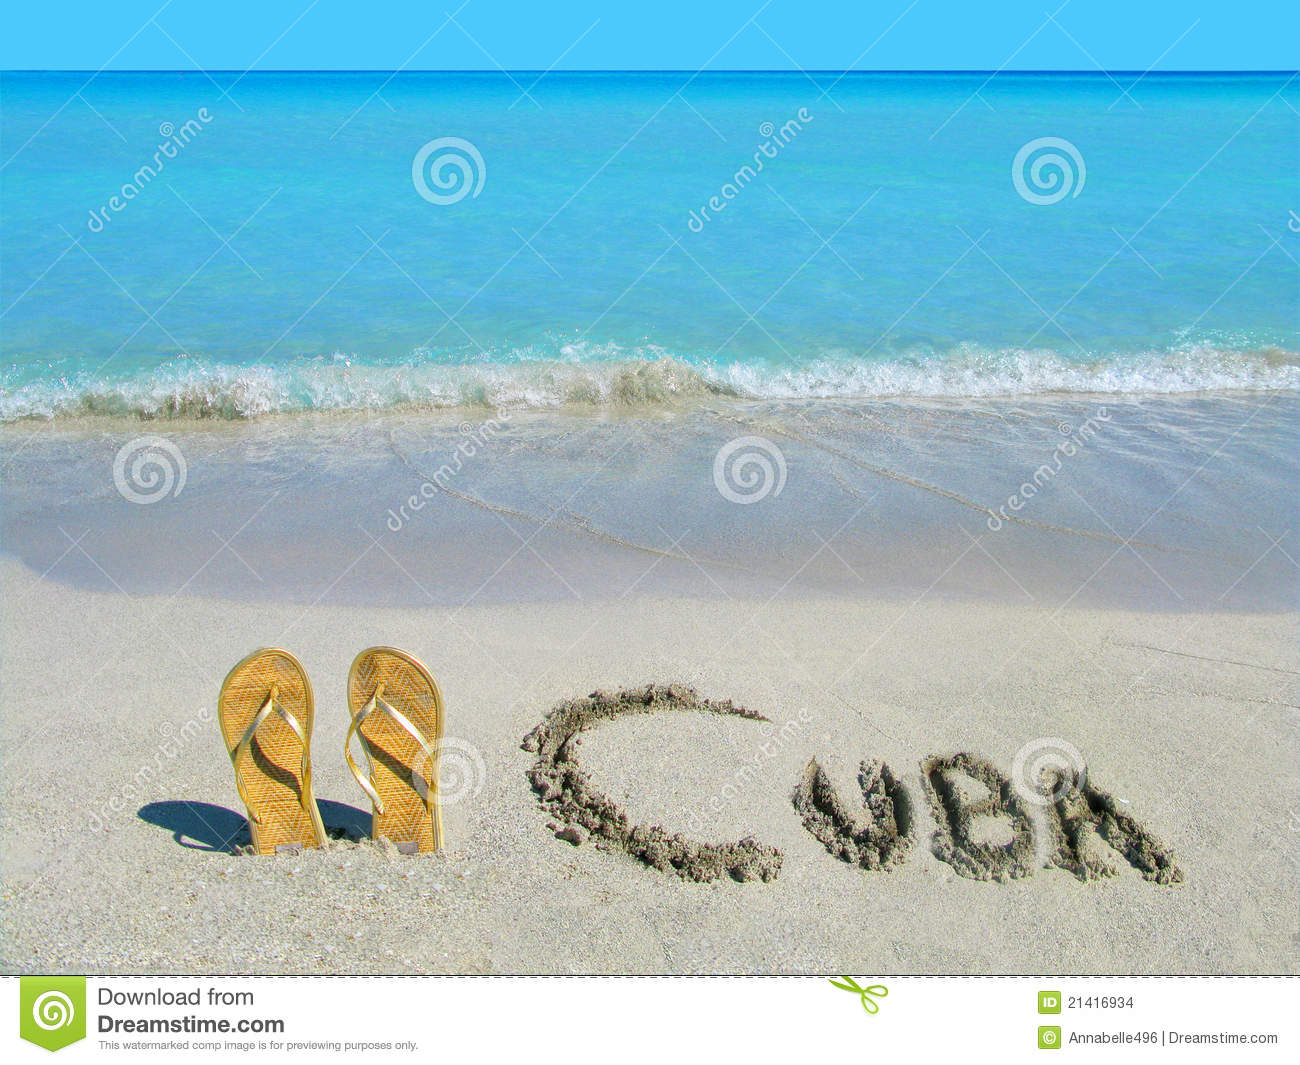 Sandals On The Beach In Varadero, Cuba Stock Images - Image: 21416934